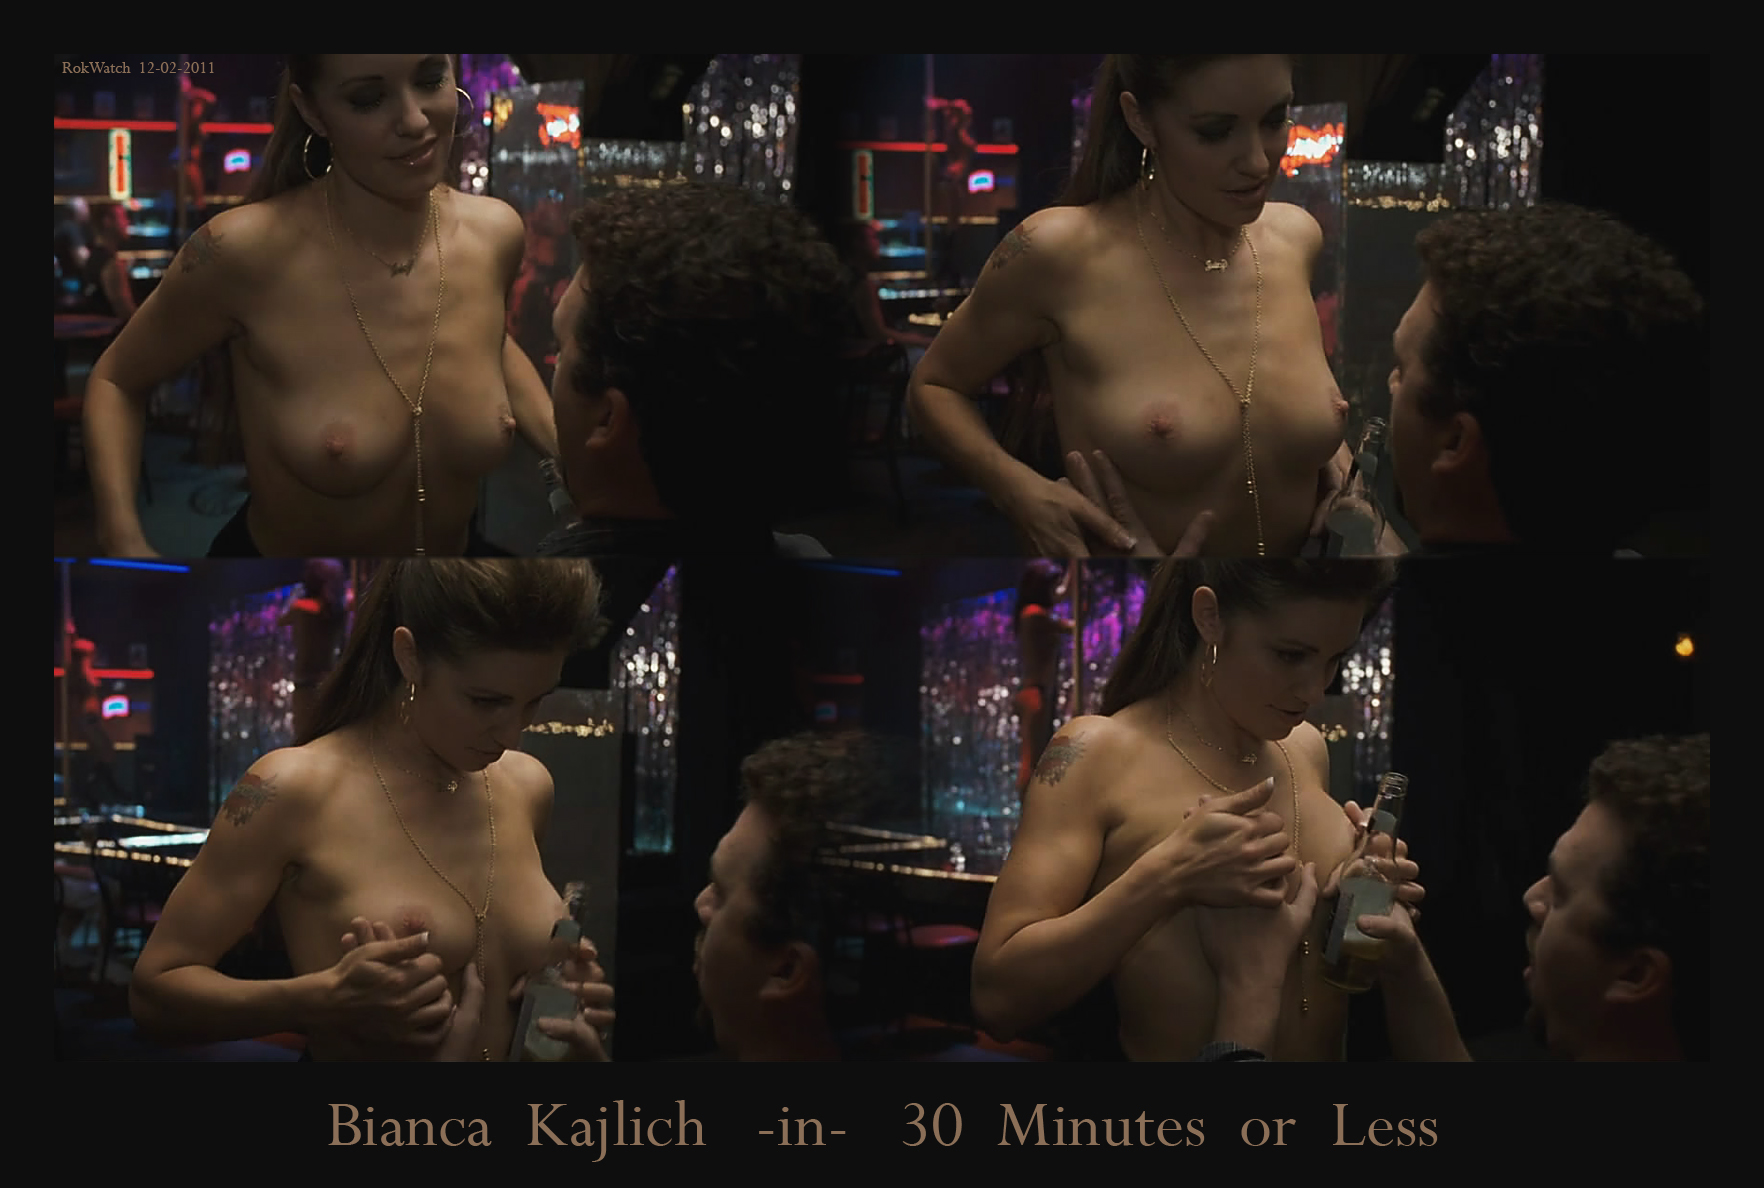 bianca-kajlich-nude-fake-video-girls-fucking-a-bottle